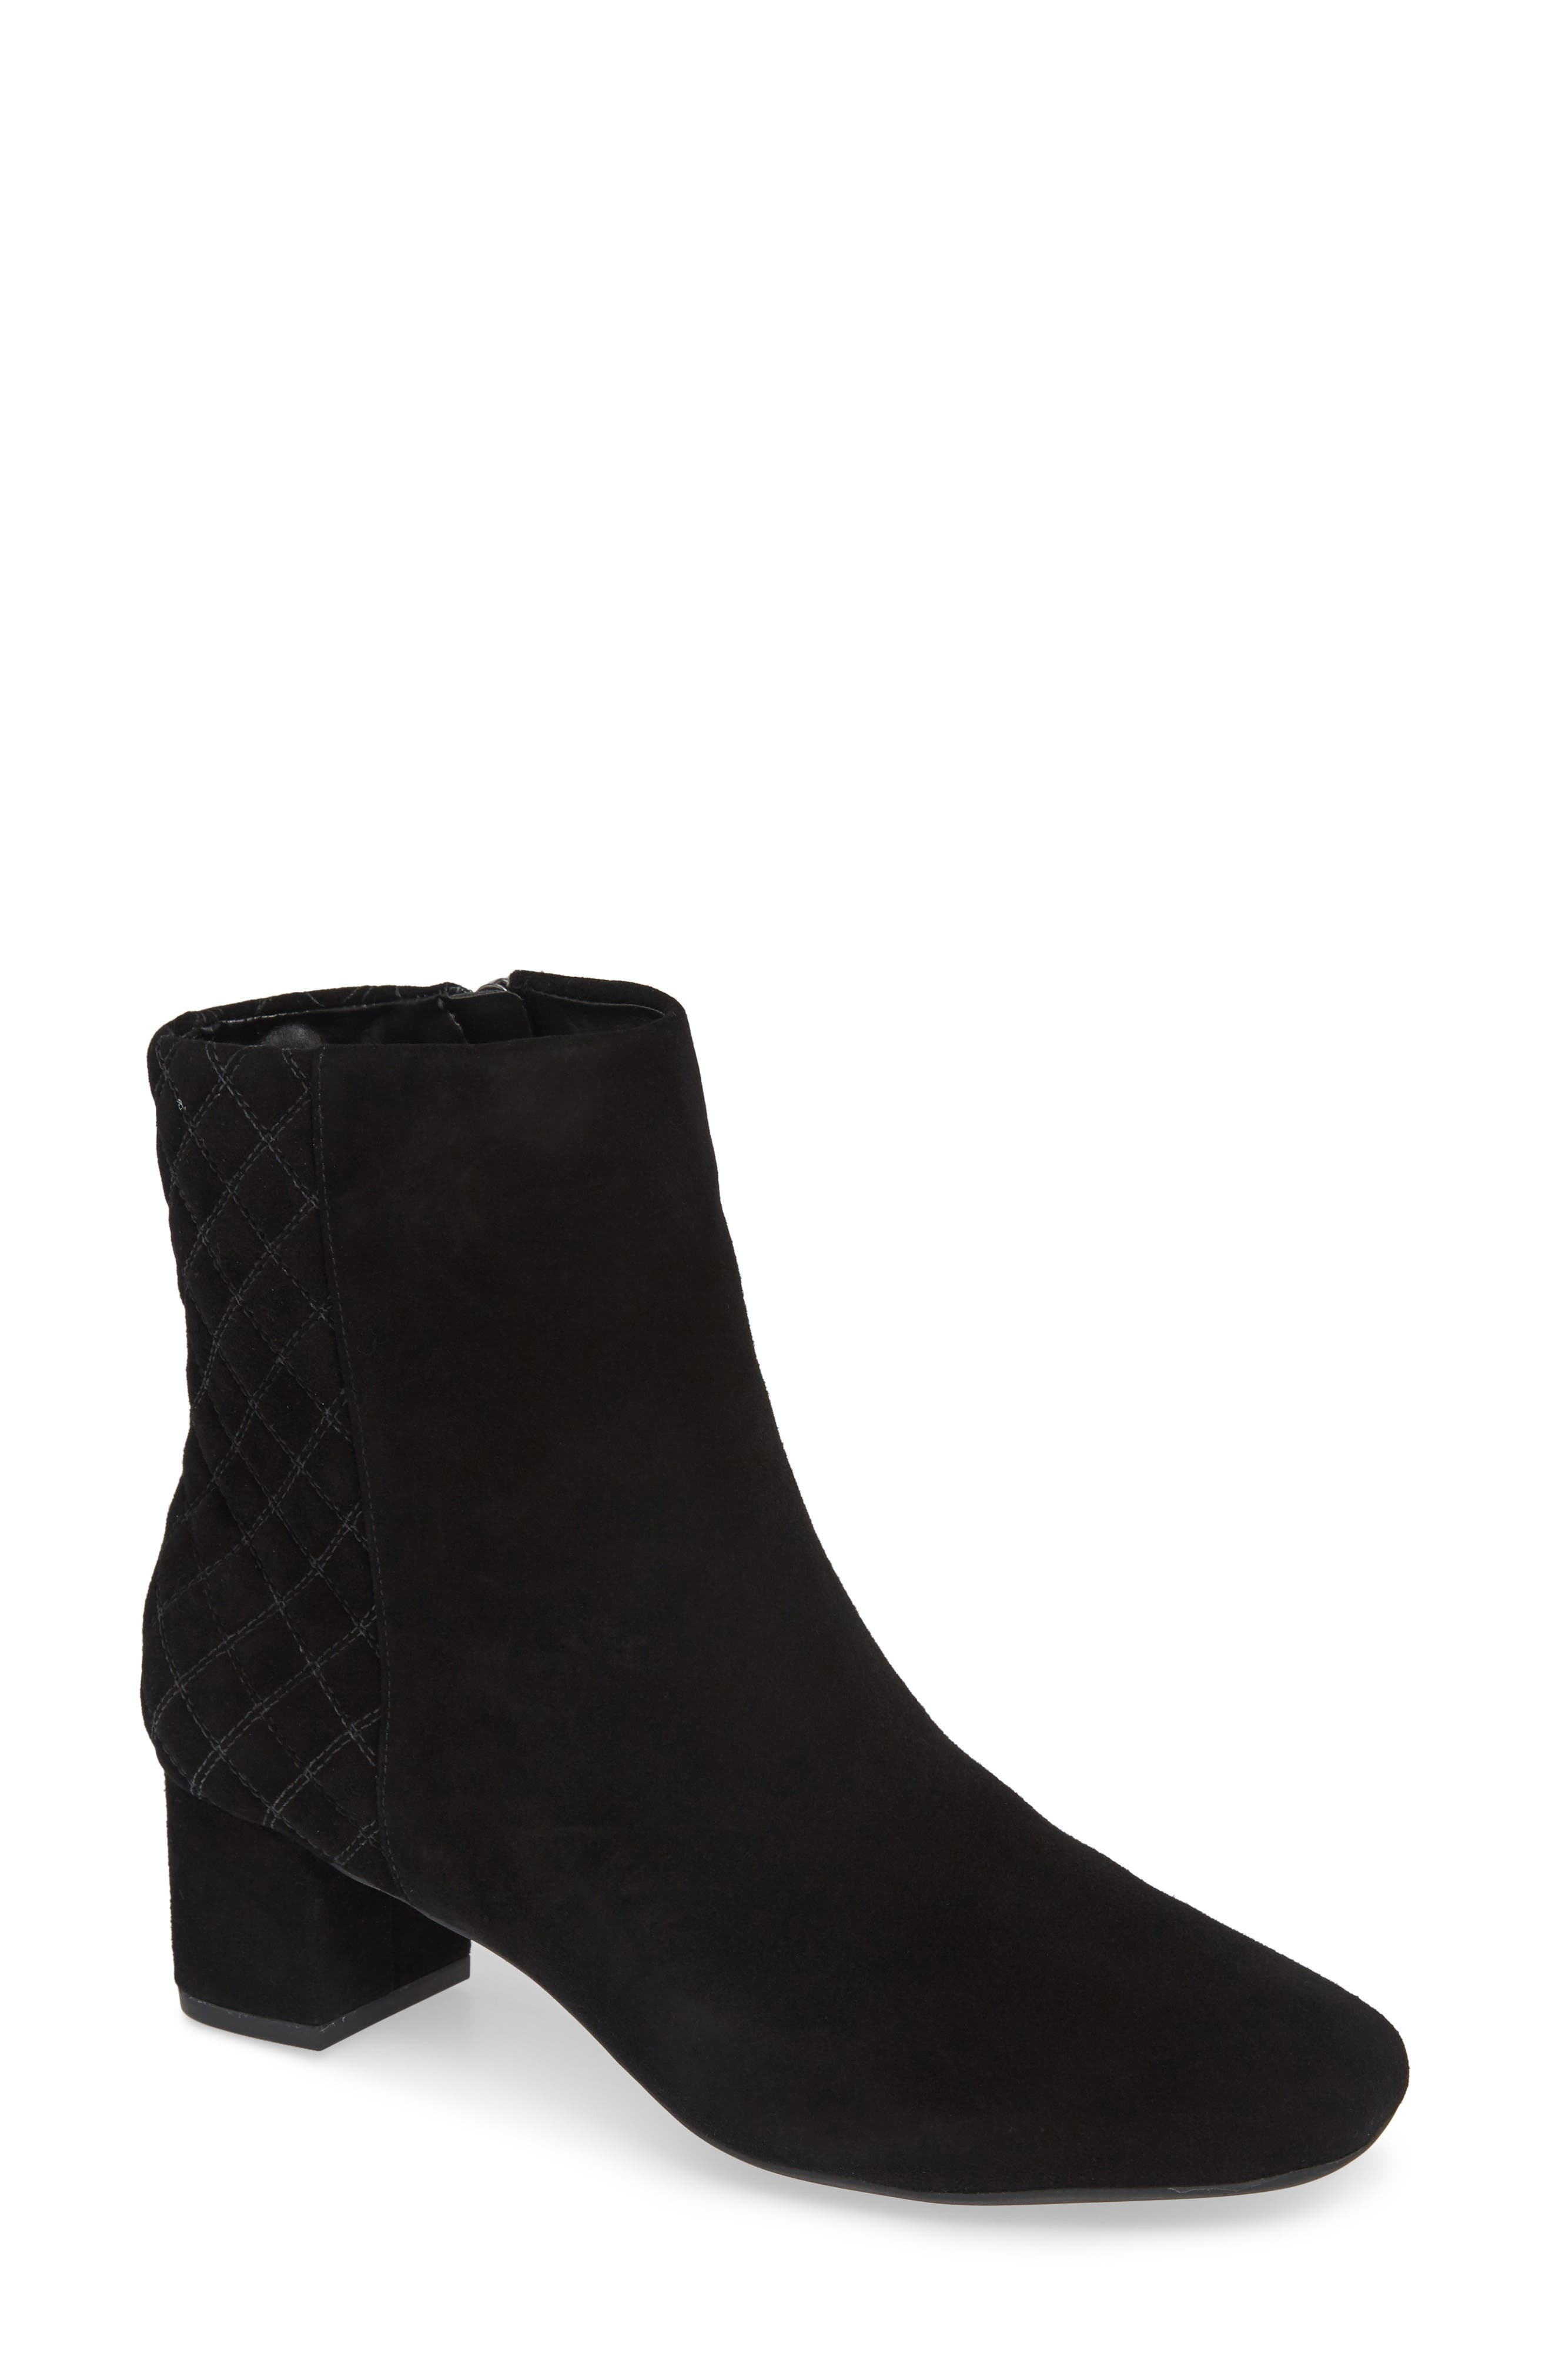 Tealia Luck Bootie,                         Main,                         color, BLACK SUEDE